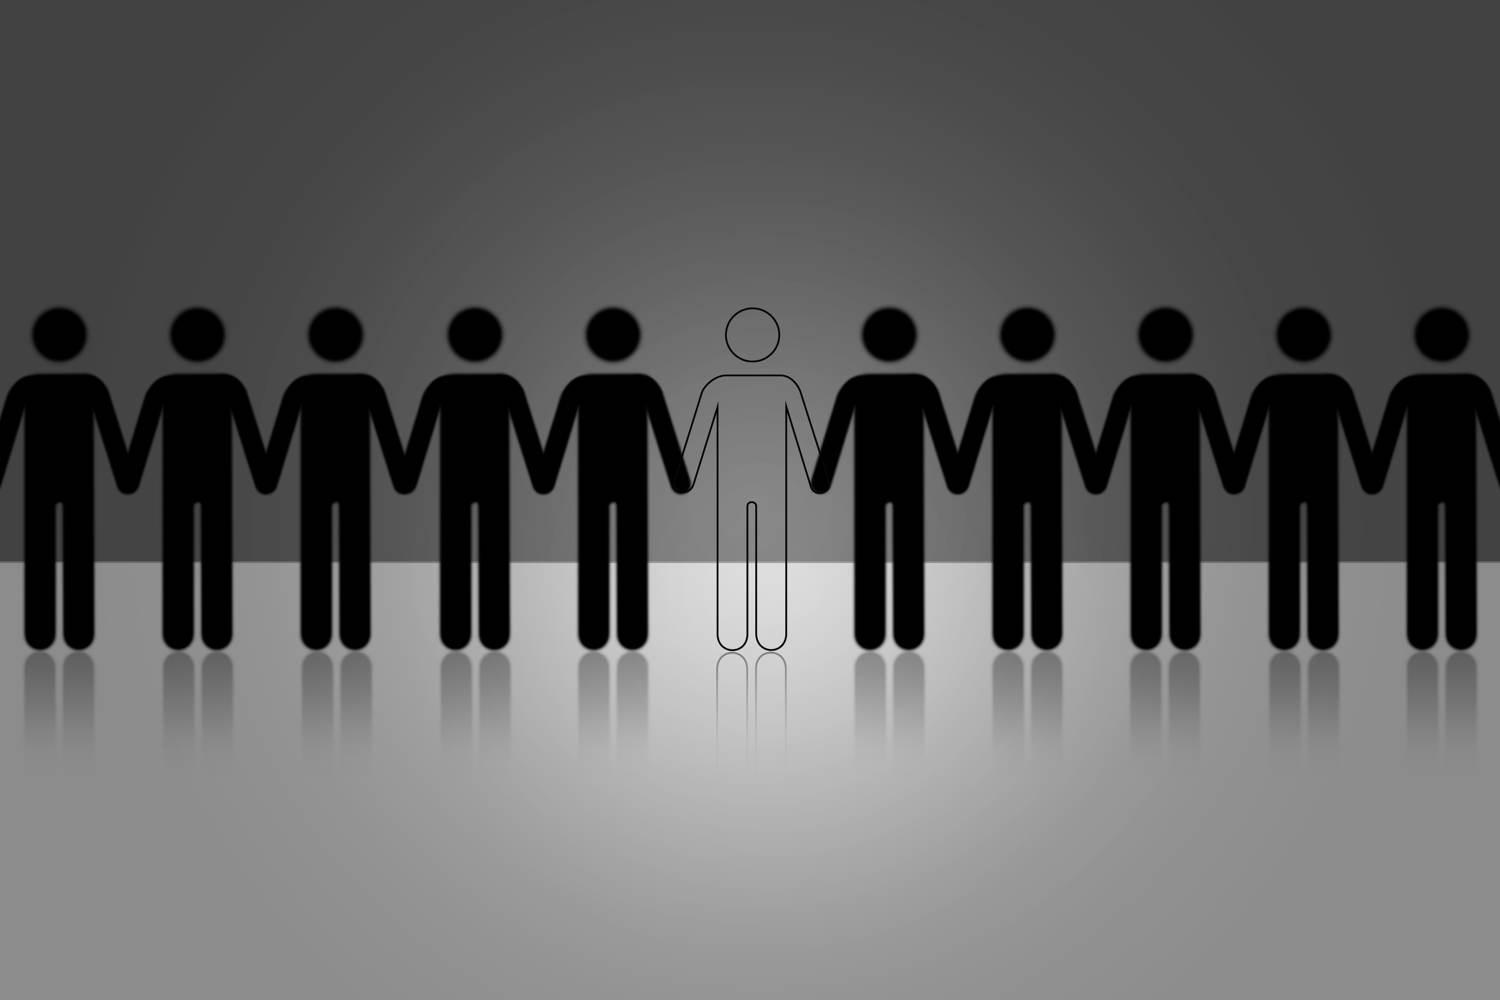 Missing person in line up